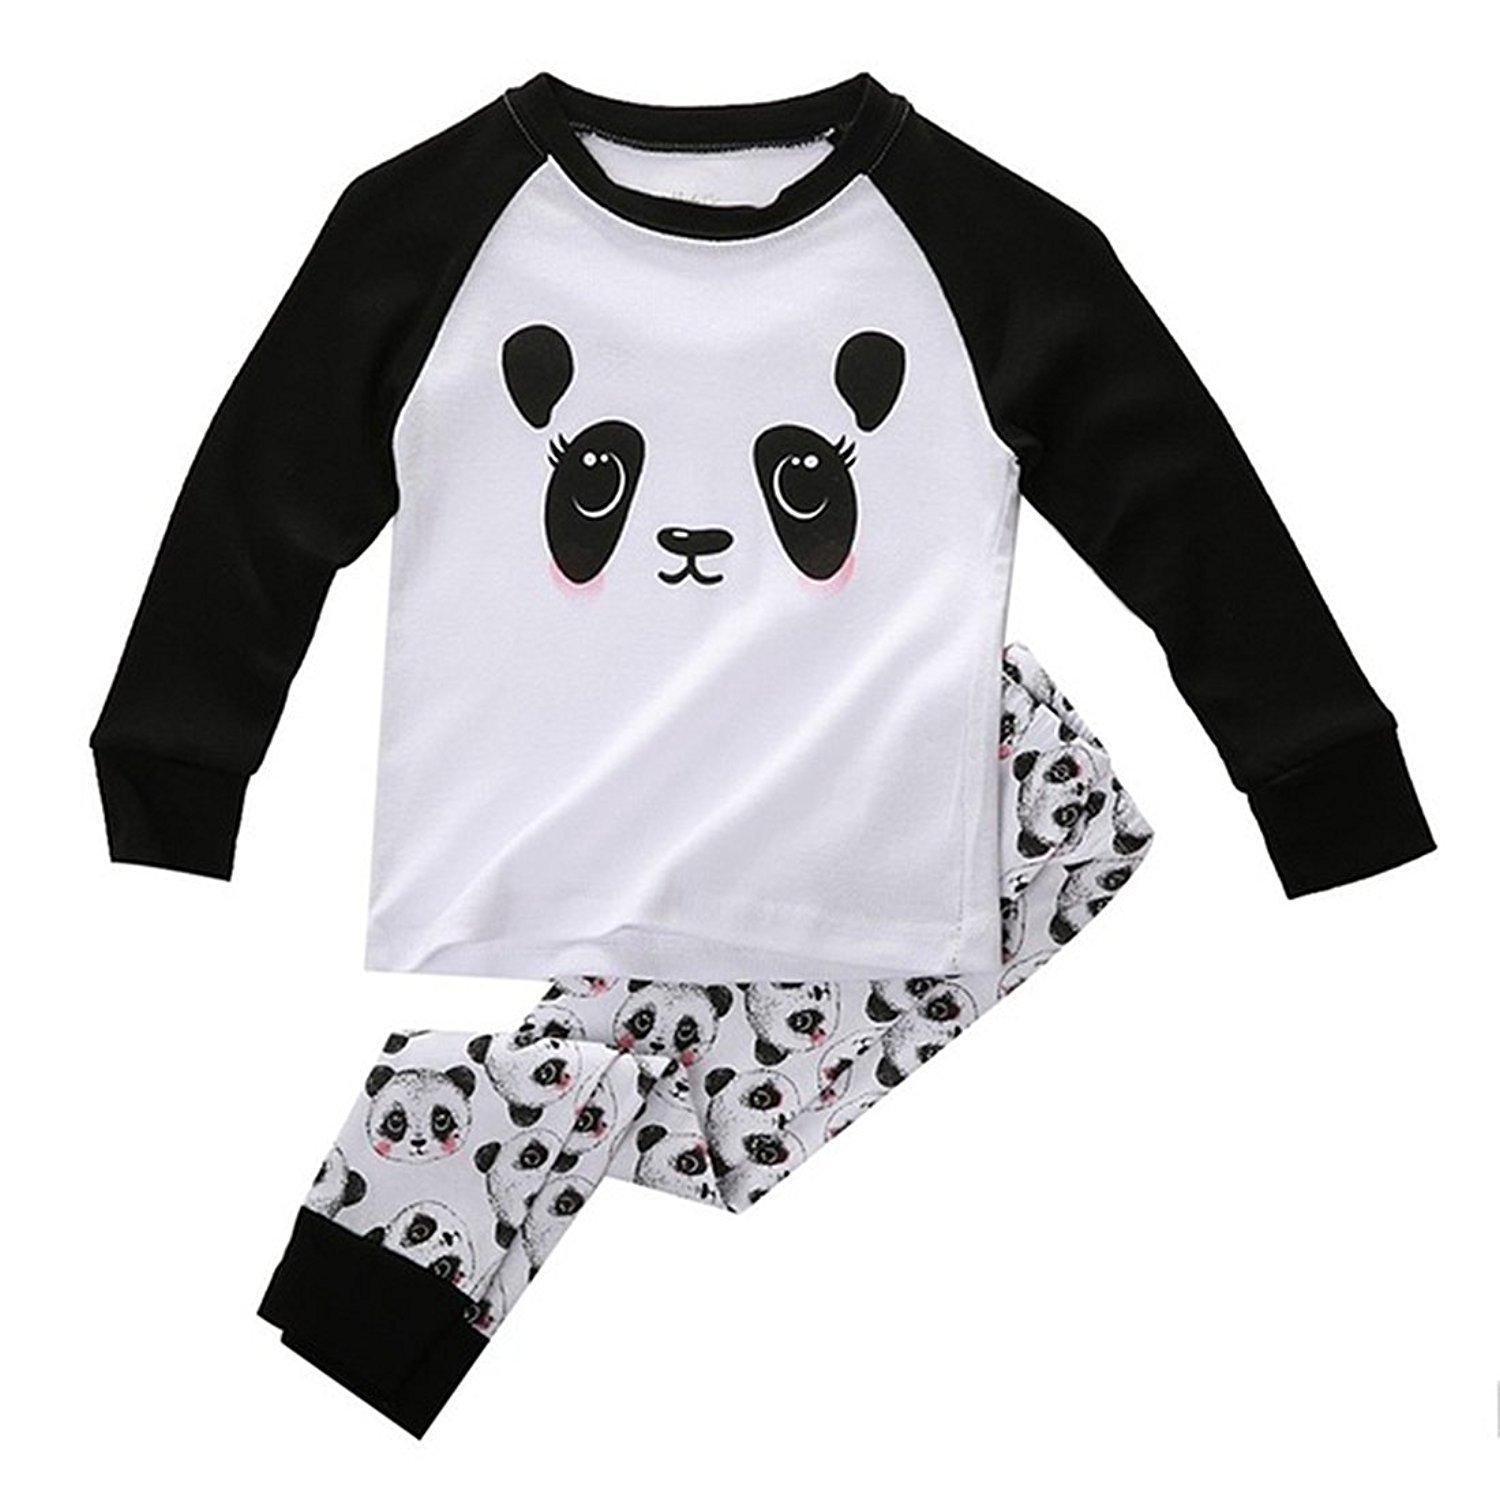 Boys Girls Pajama Set - TOOGOO(R)Cute Panda Baby Toddler Kids Boys Girls Sleepwear Nightwear Pajama Set 7t 069178A6